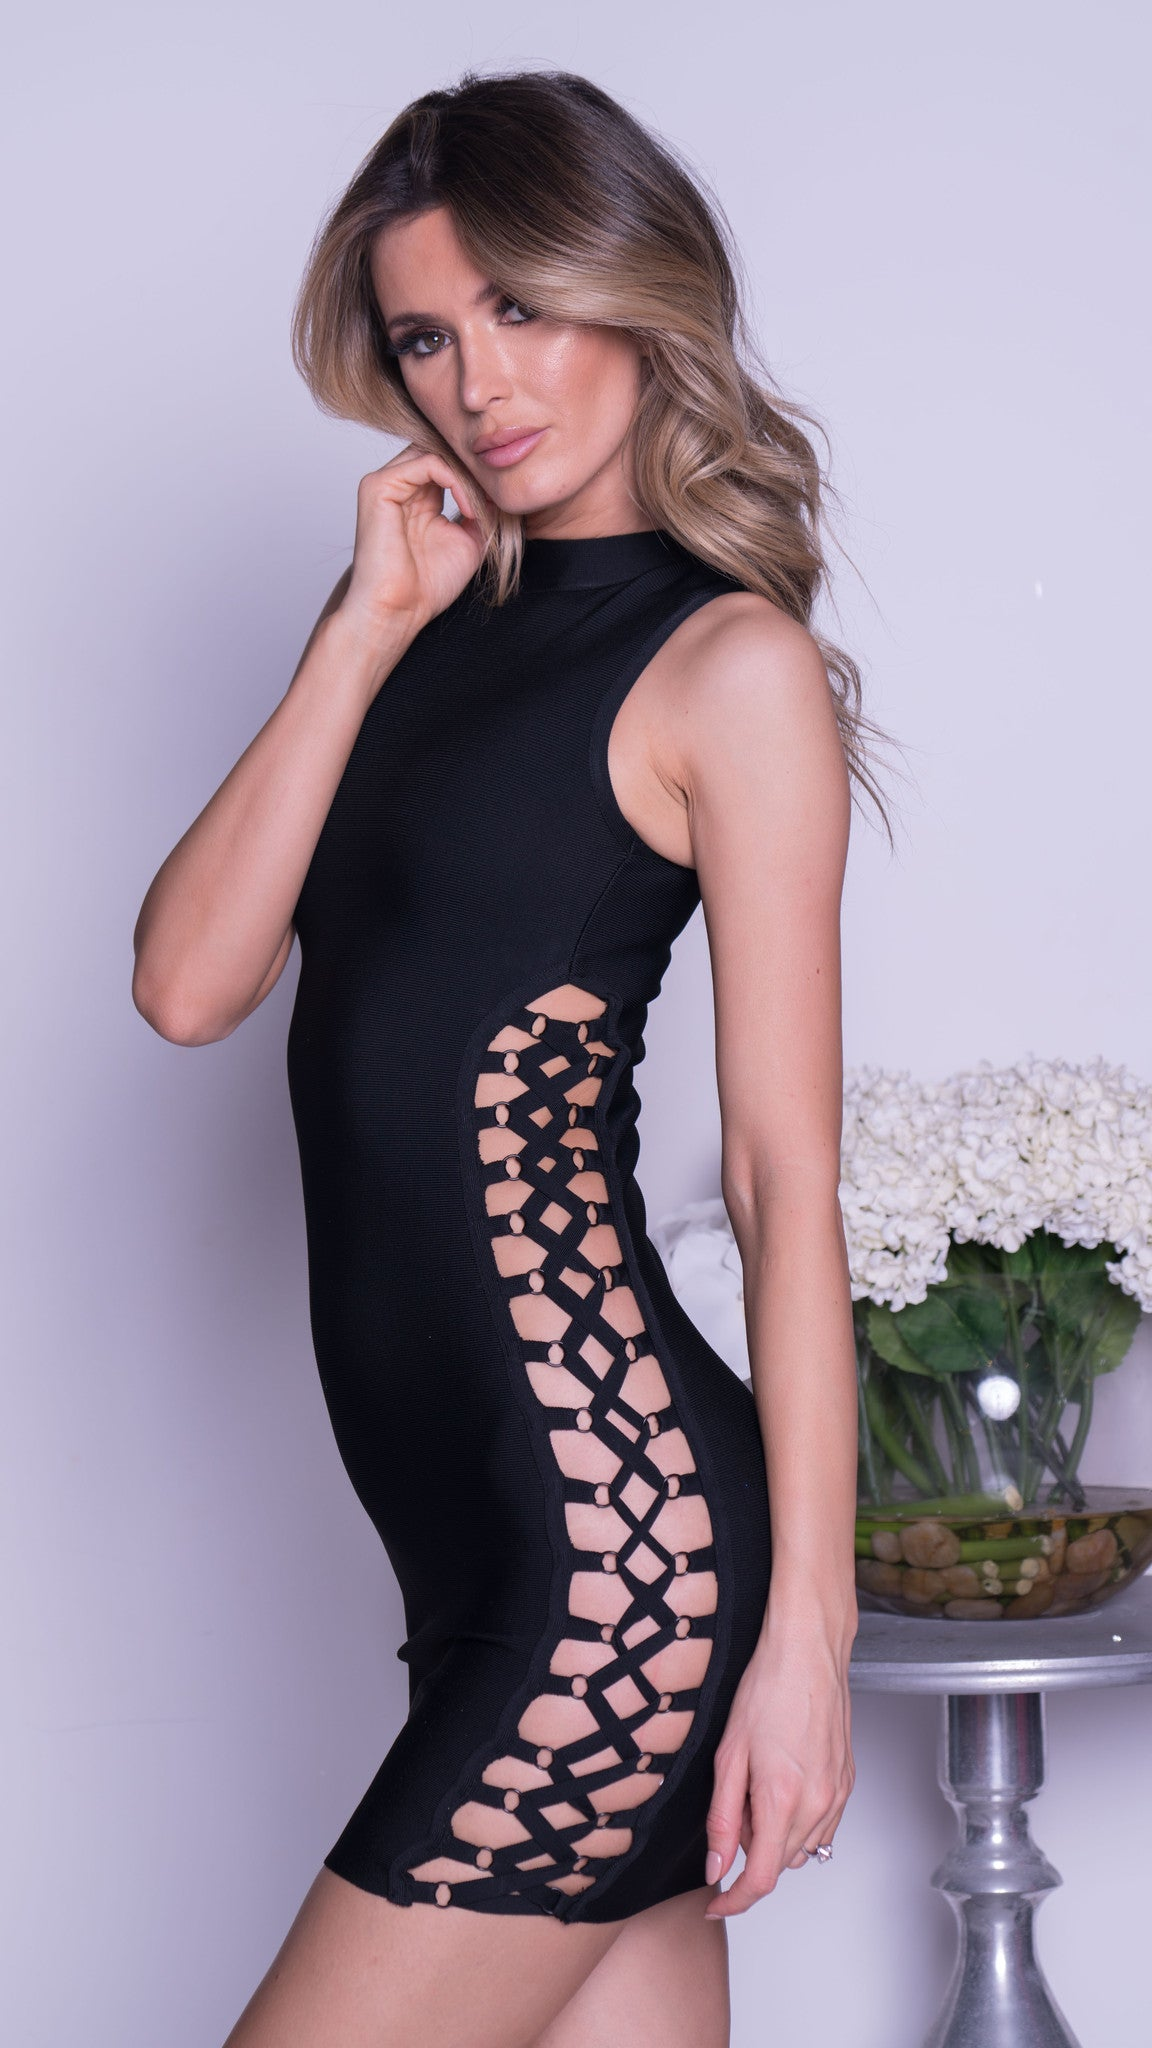 KENNEDY BANDAGE CUTOUT DRESS - 2 COLORS